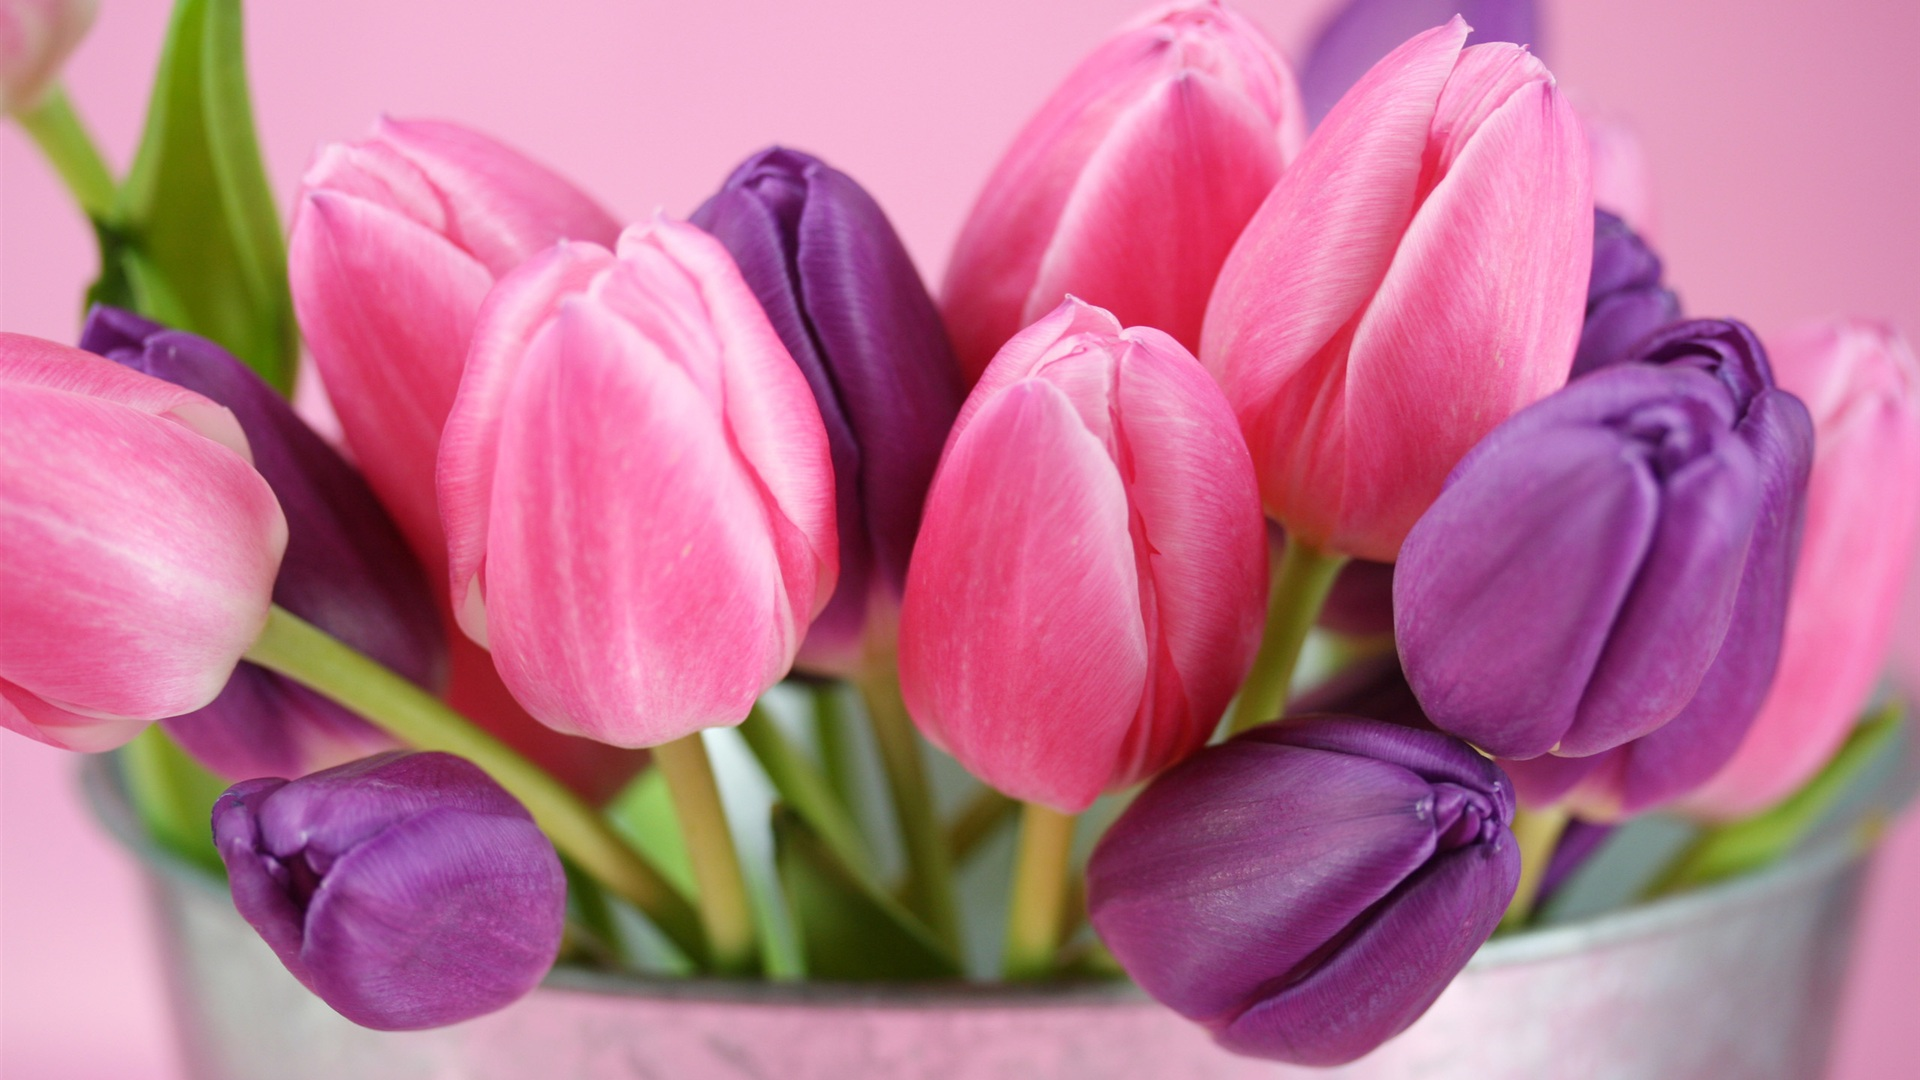 Wallpaper Pink And Purple Tulips Flowers 2560x1600 Hd Picture Image